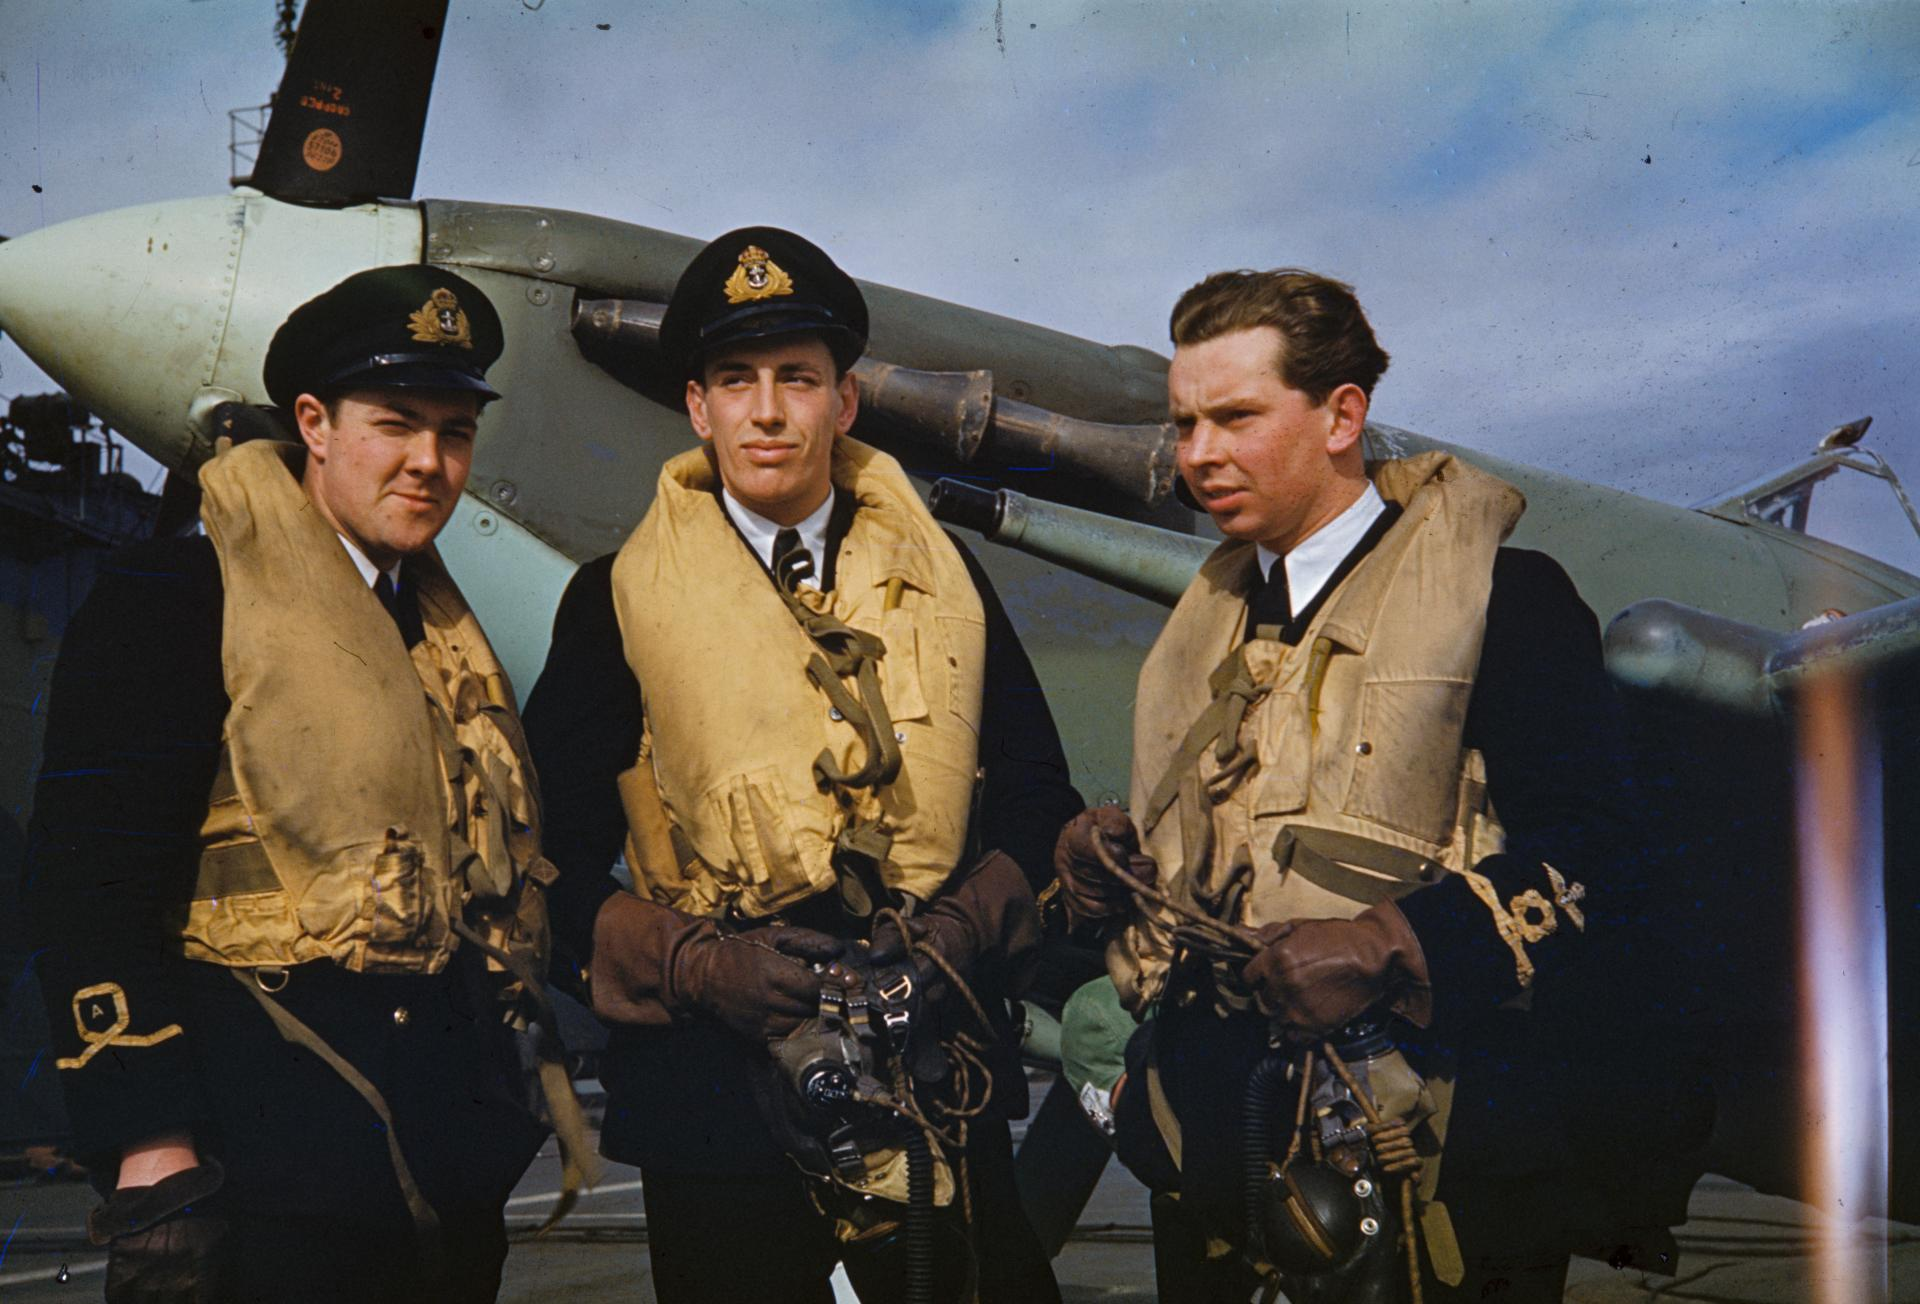 Three Fleet Air Arm pilots wearing 'Mae West' life-jackets wait for the order of the day on board an aircraft carrier. A Supermarine Seafire can be seen in the background.